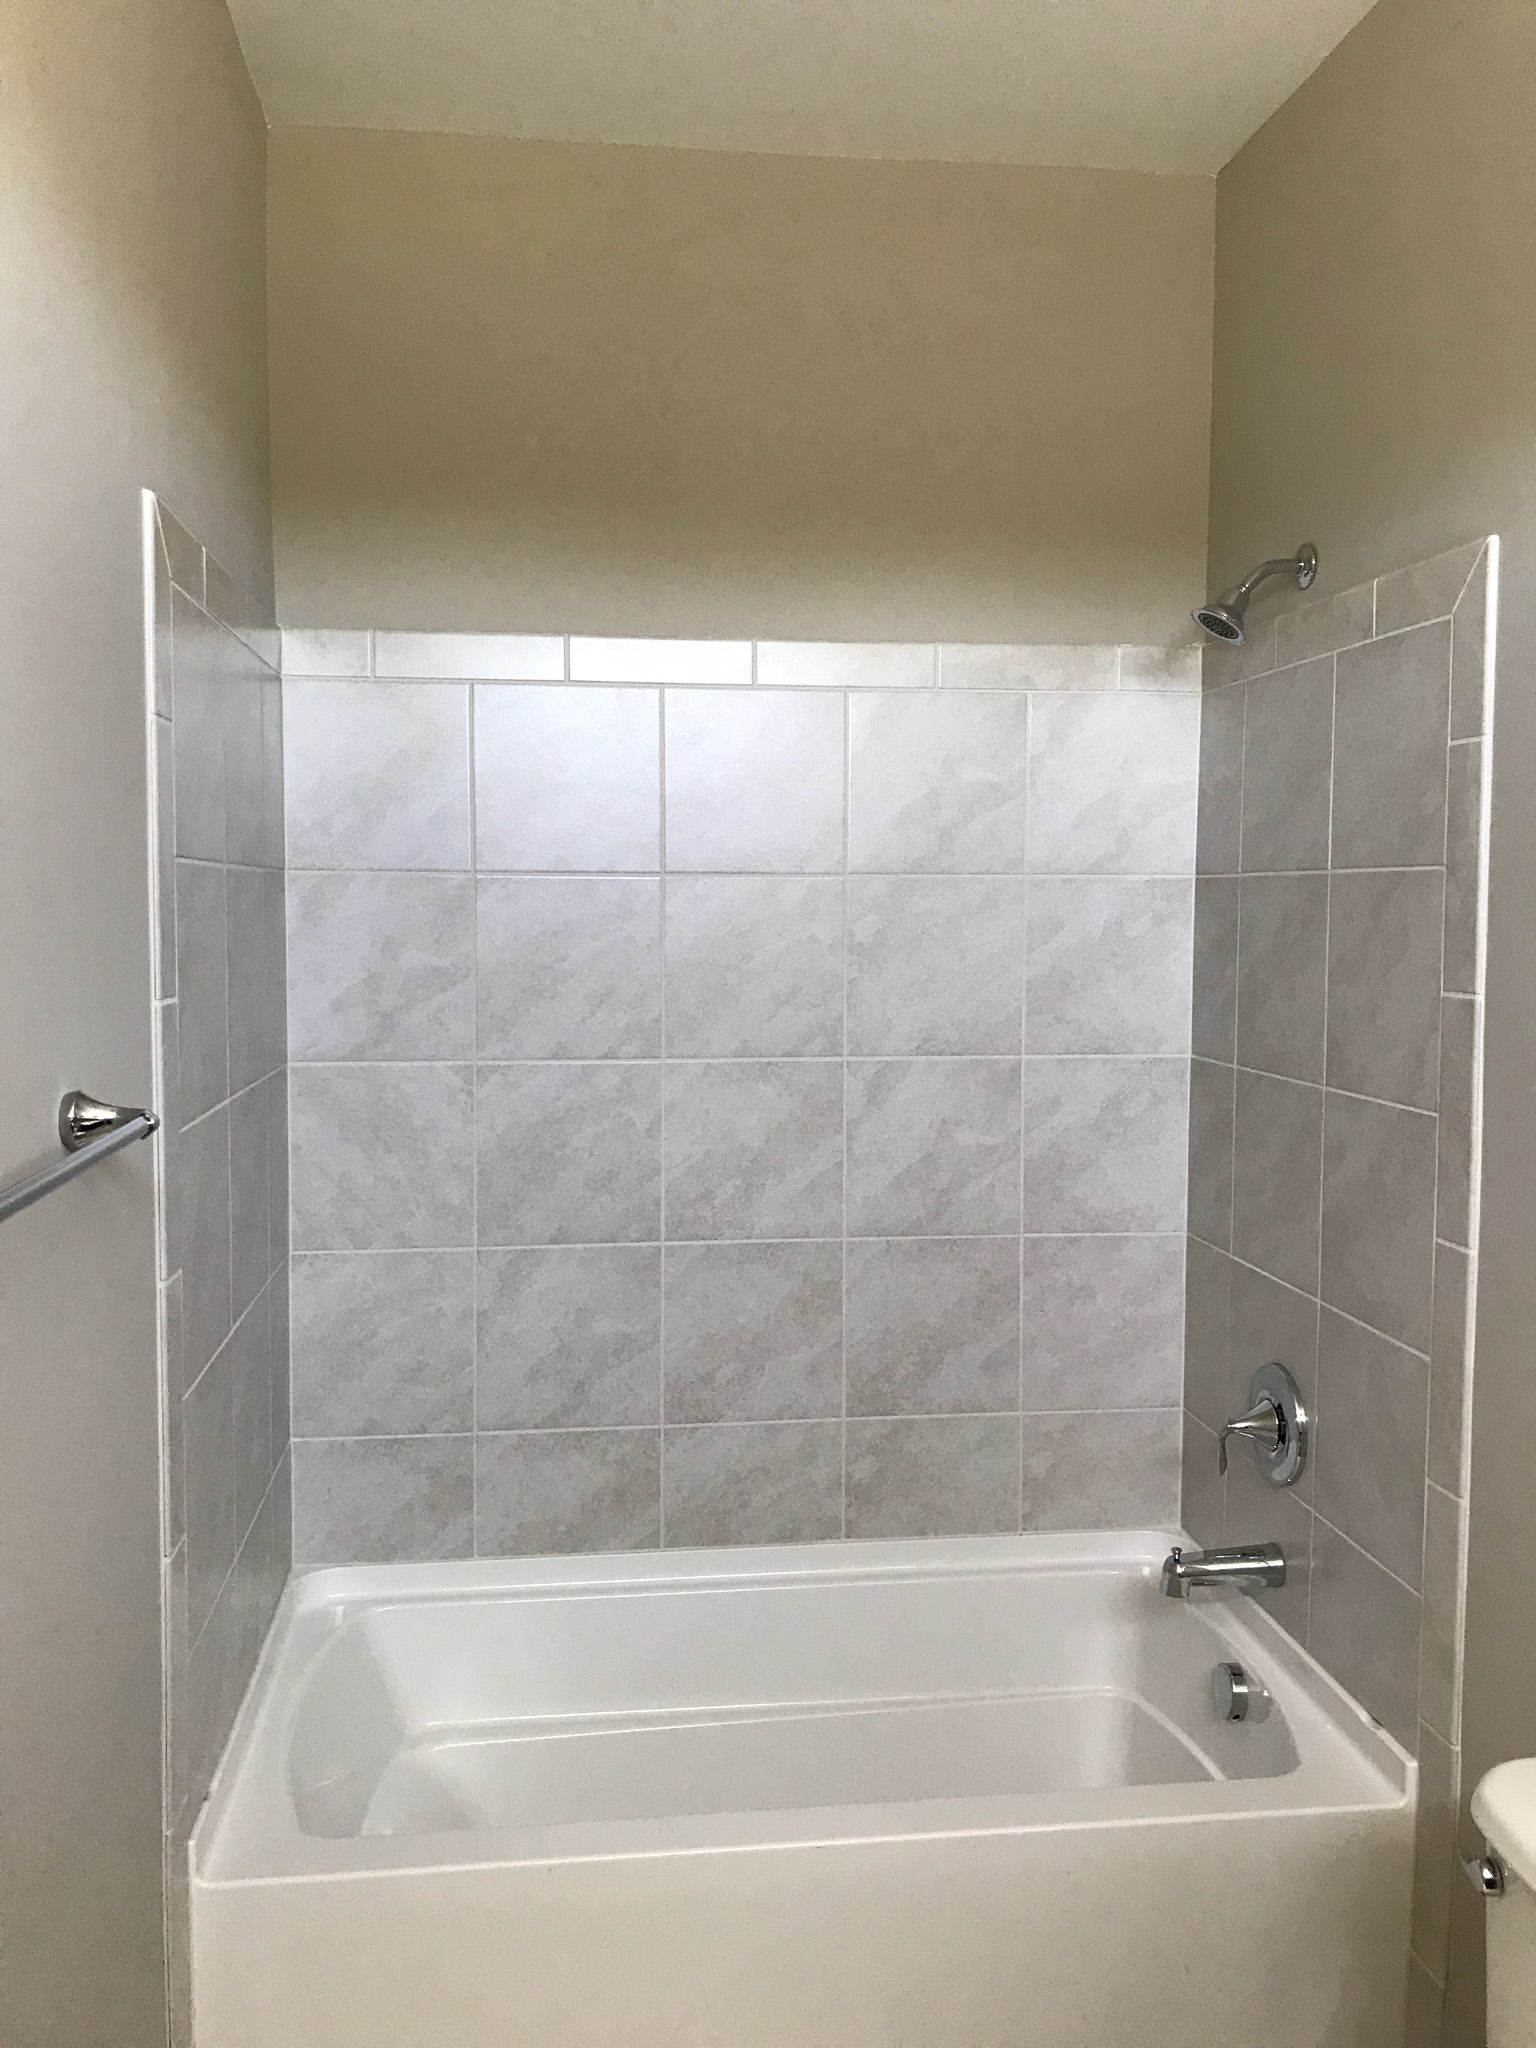 Standard Height Tile On 9 Walls With Images Bathroom Wall